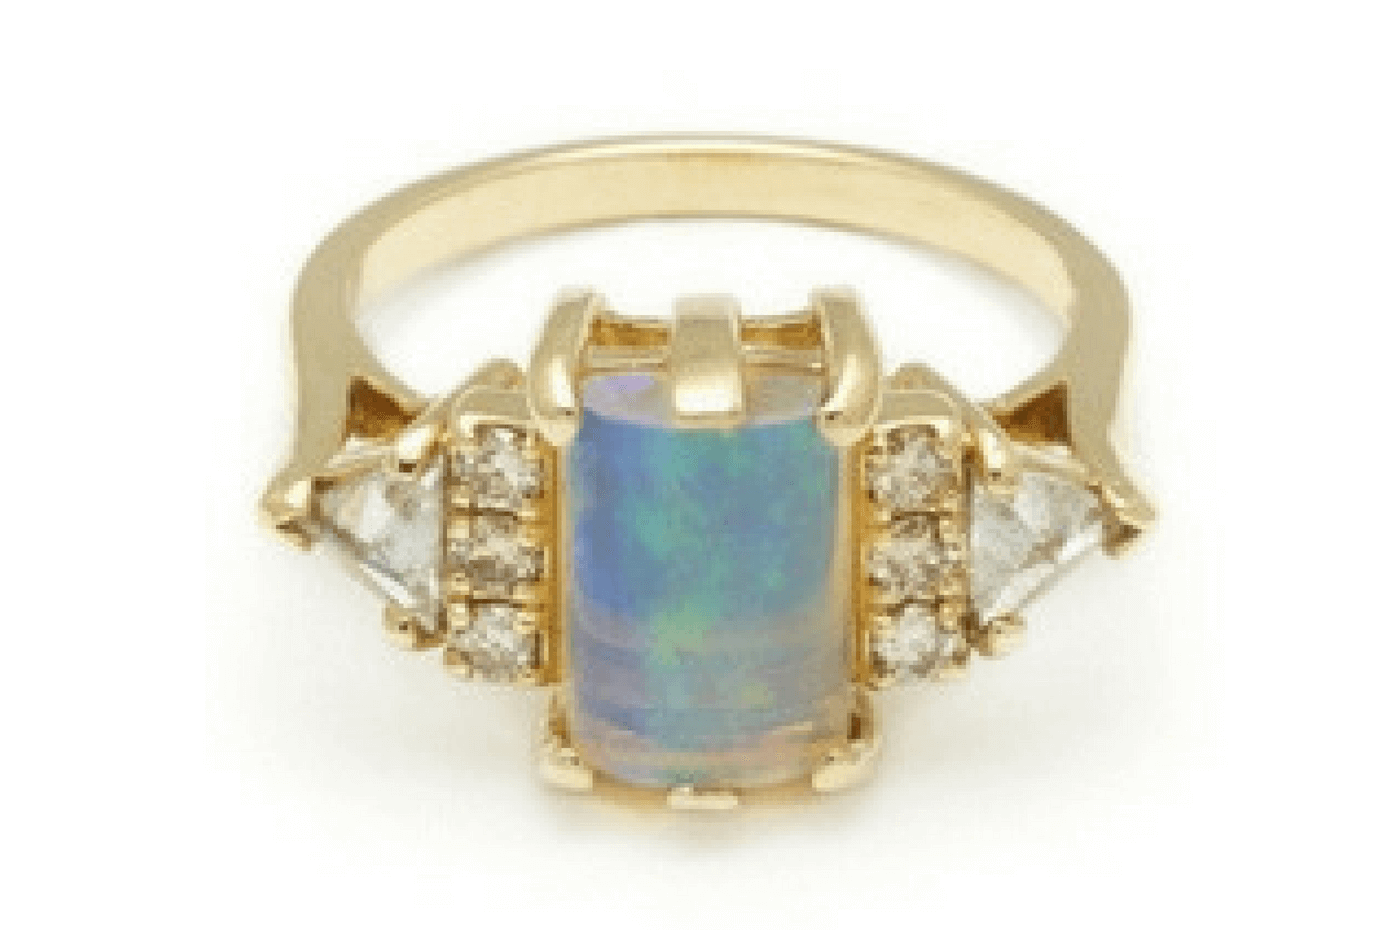 Opal Cabochon Bea Ring by Anna Sheffield.